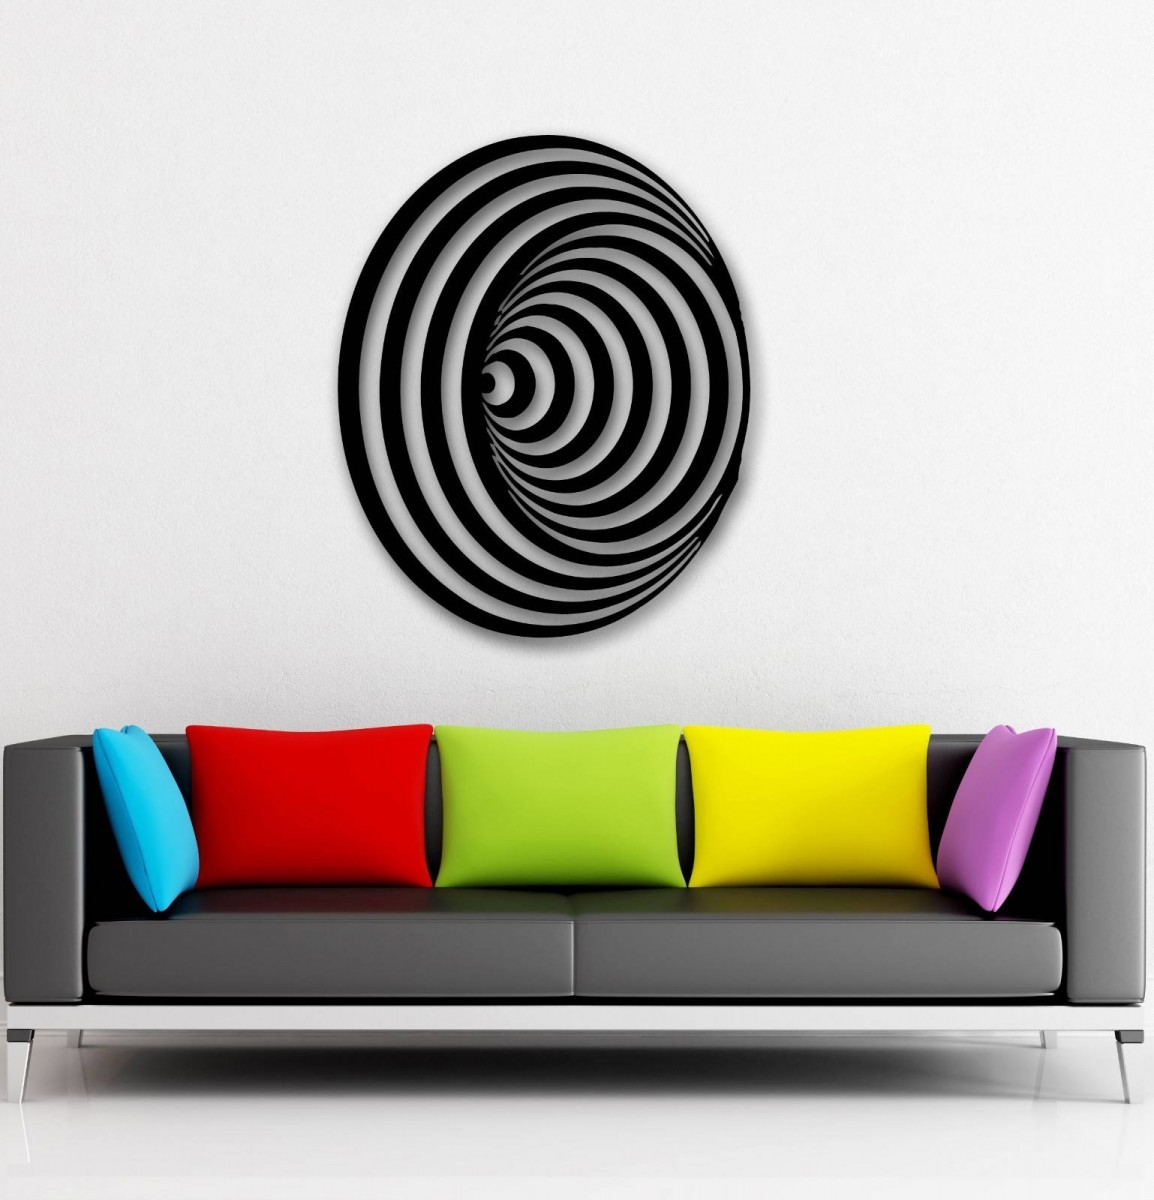 optical-art-decoration-for-the-wall.jpg